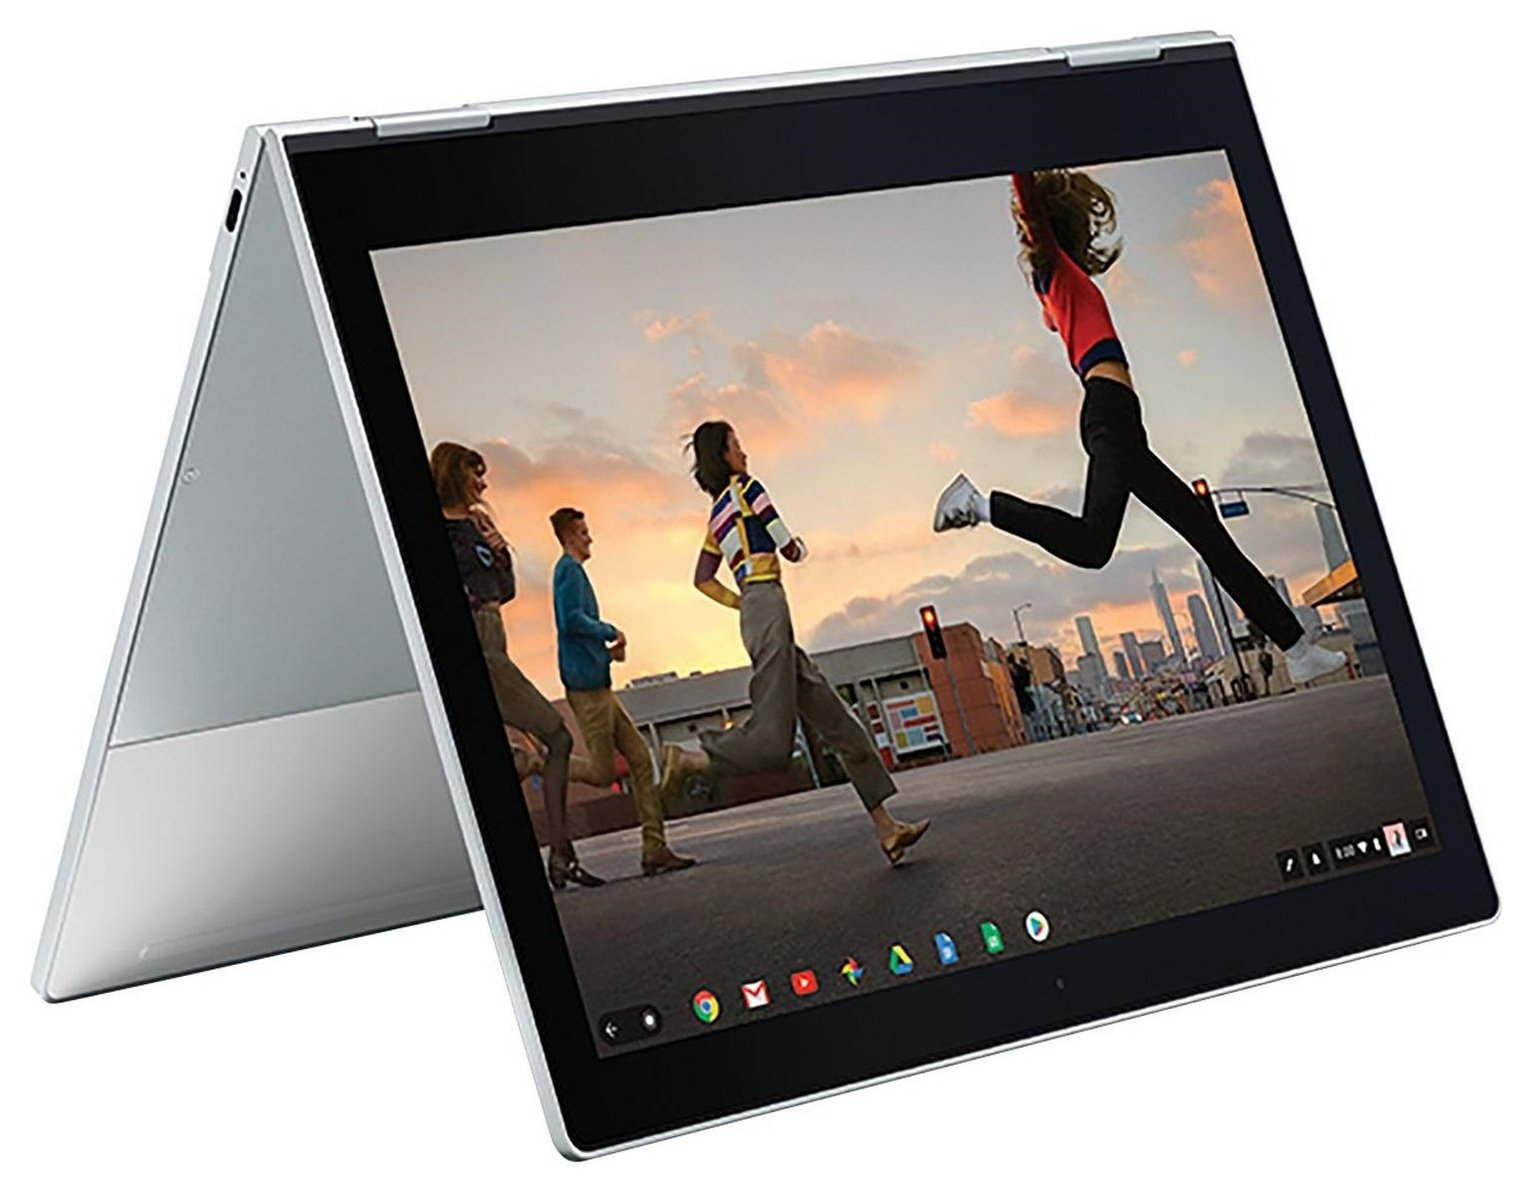 Google Pixelbook 12.3 Inch i5 8GB 128GB Chromebook - Silver